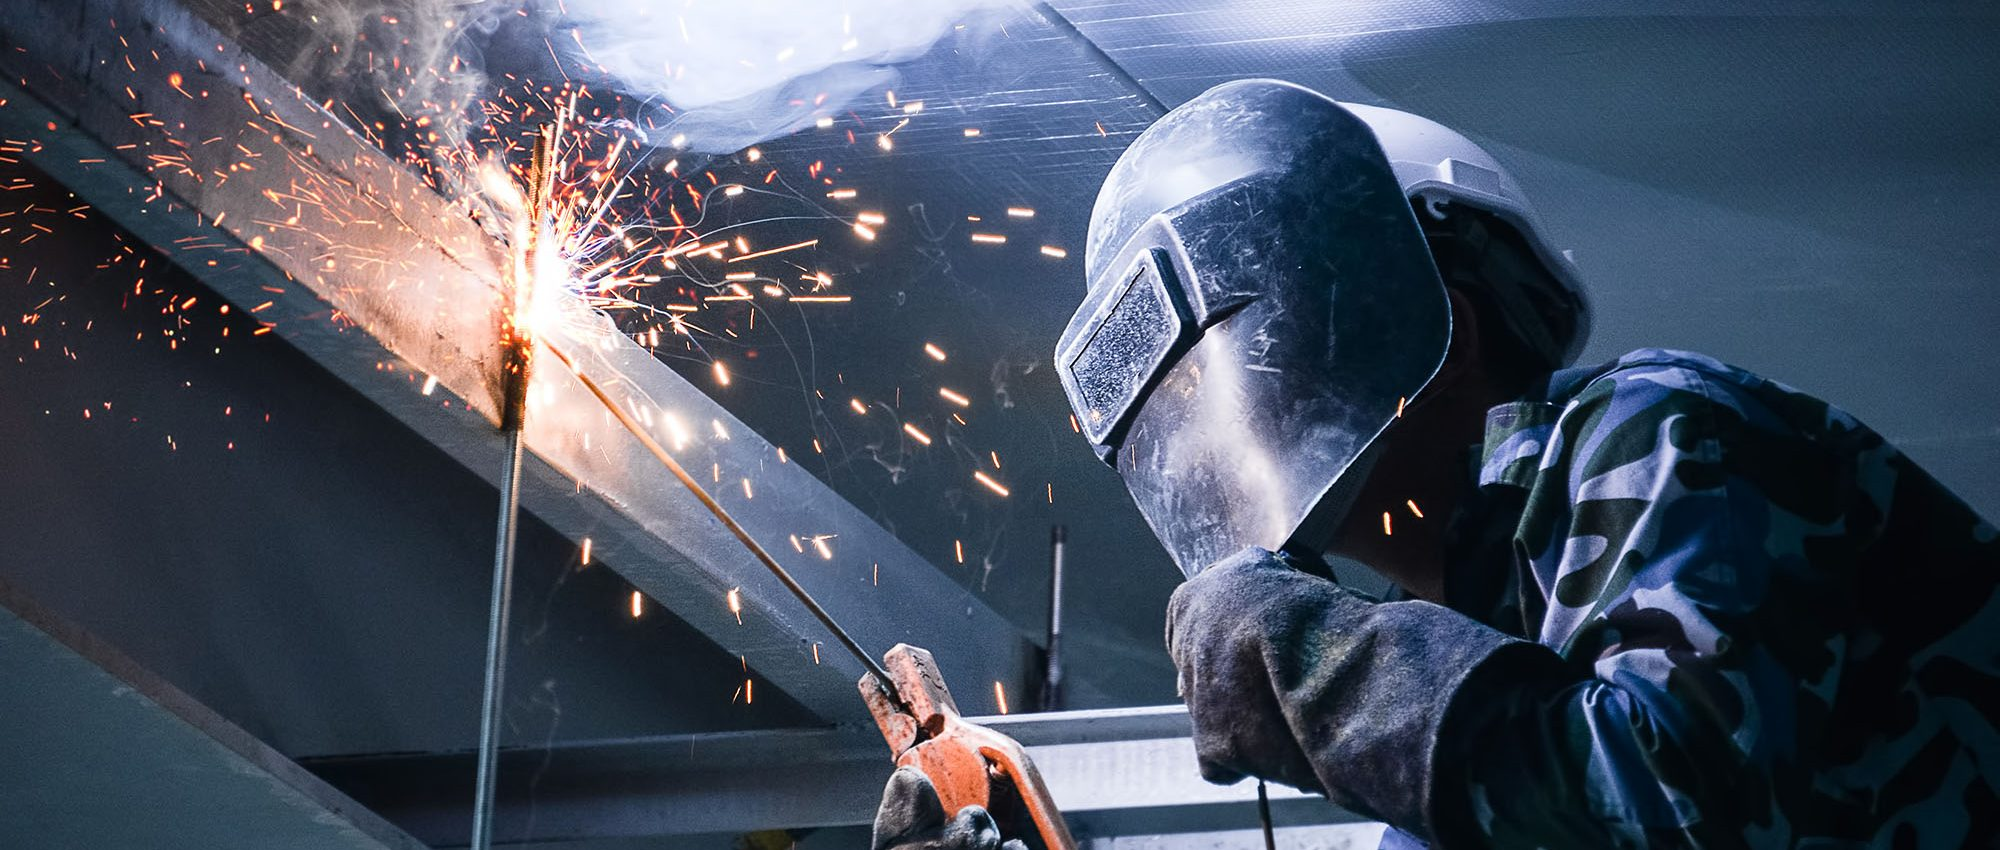 photo of person welding in a high space